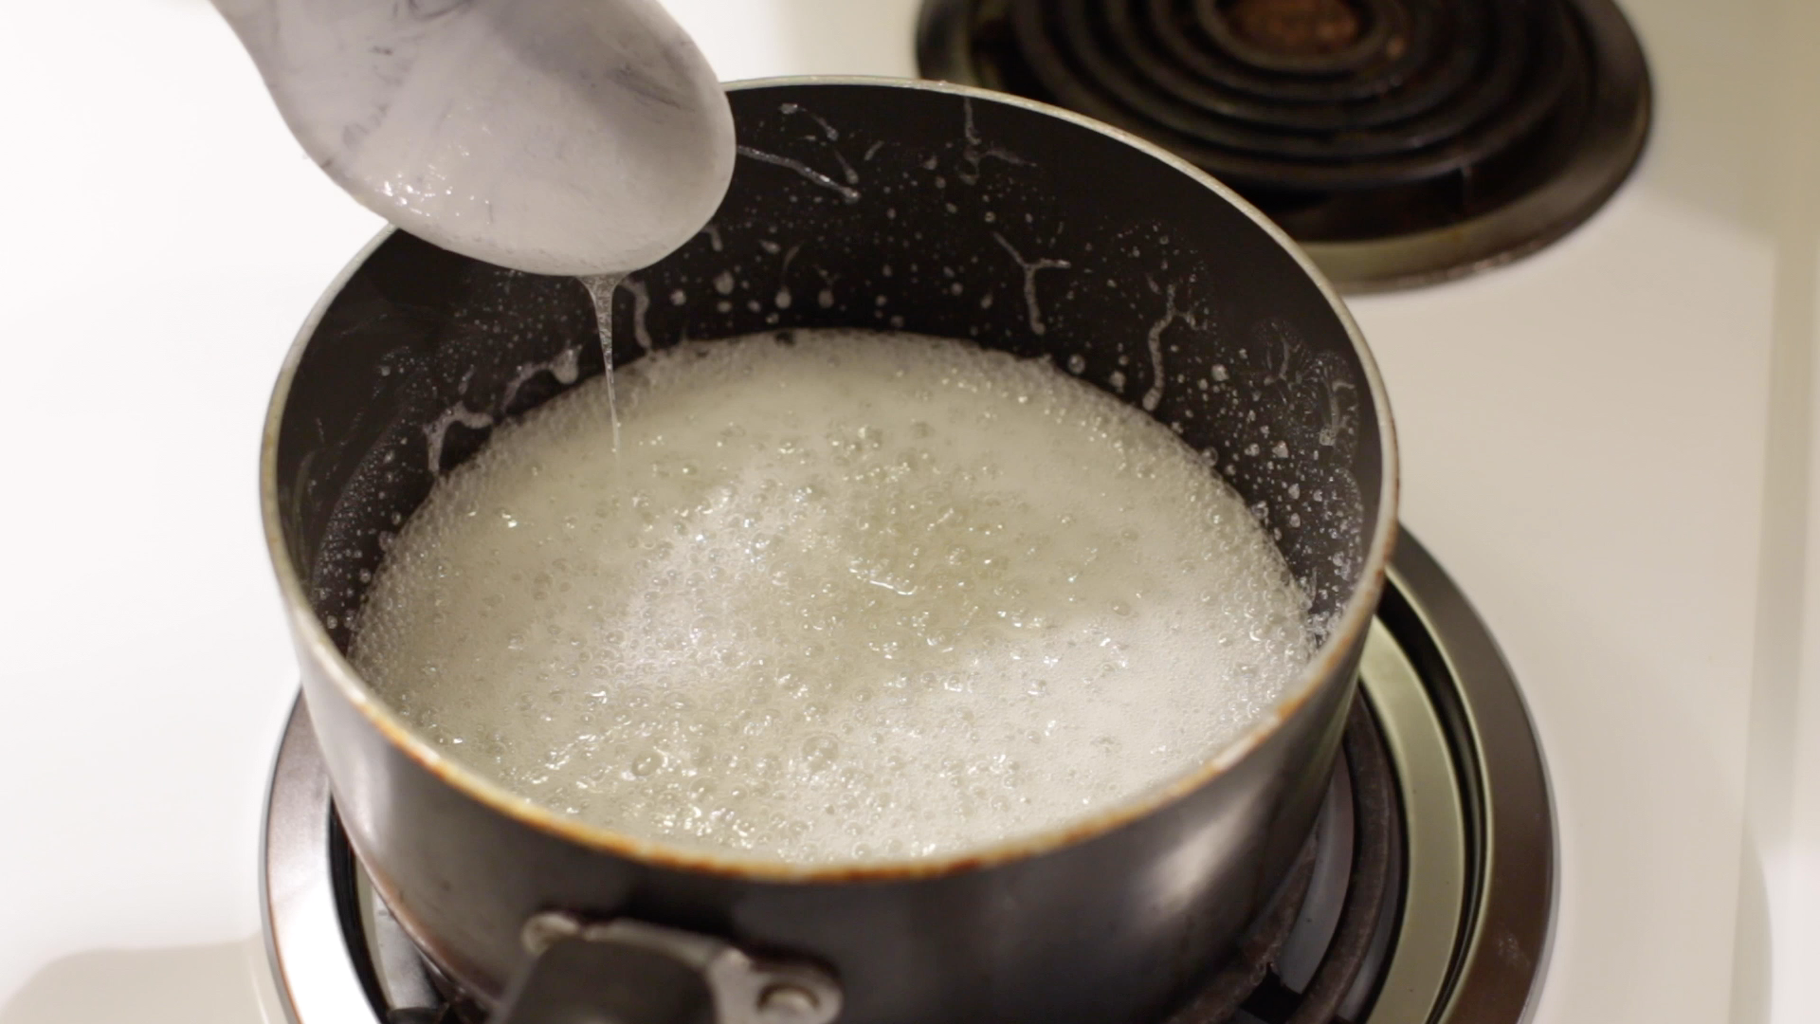 Heat the Sugar and Corn Syrup